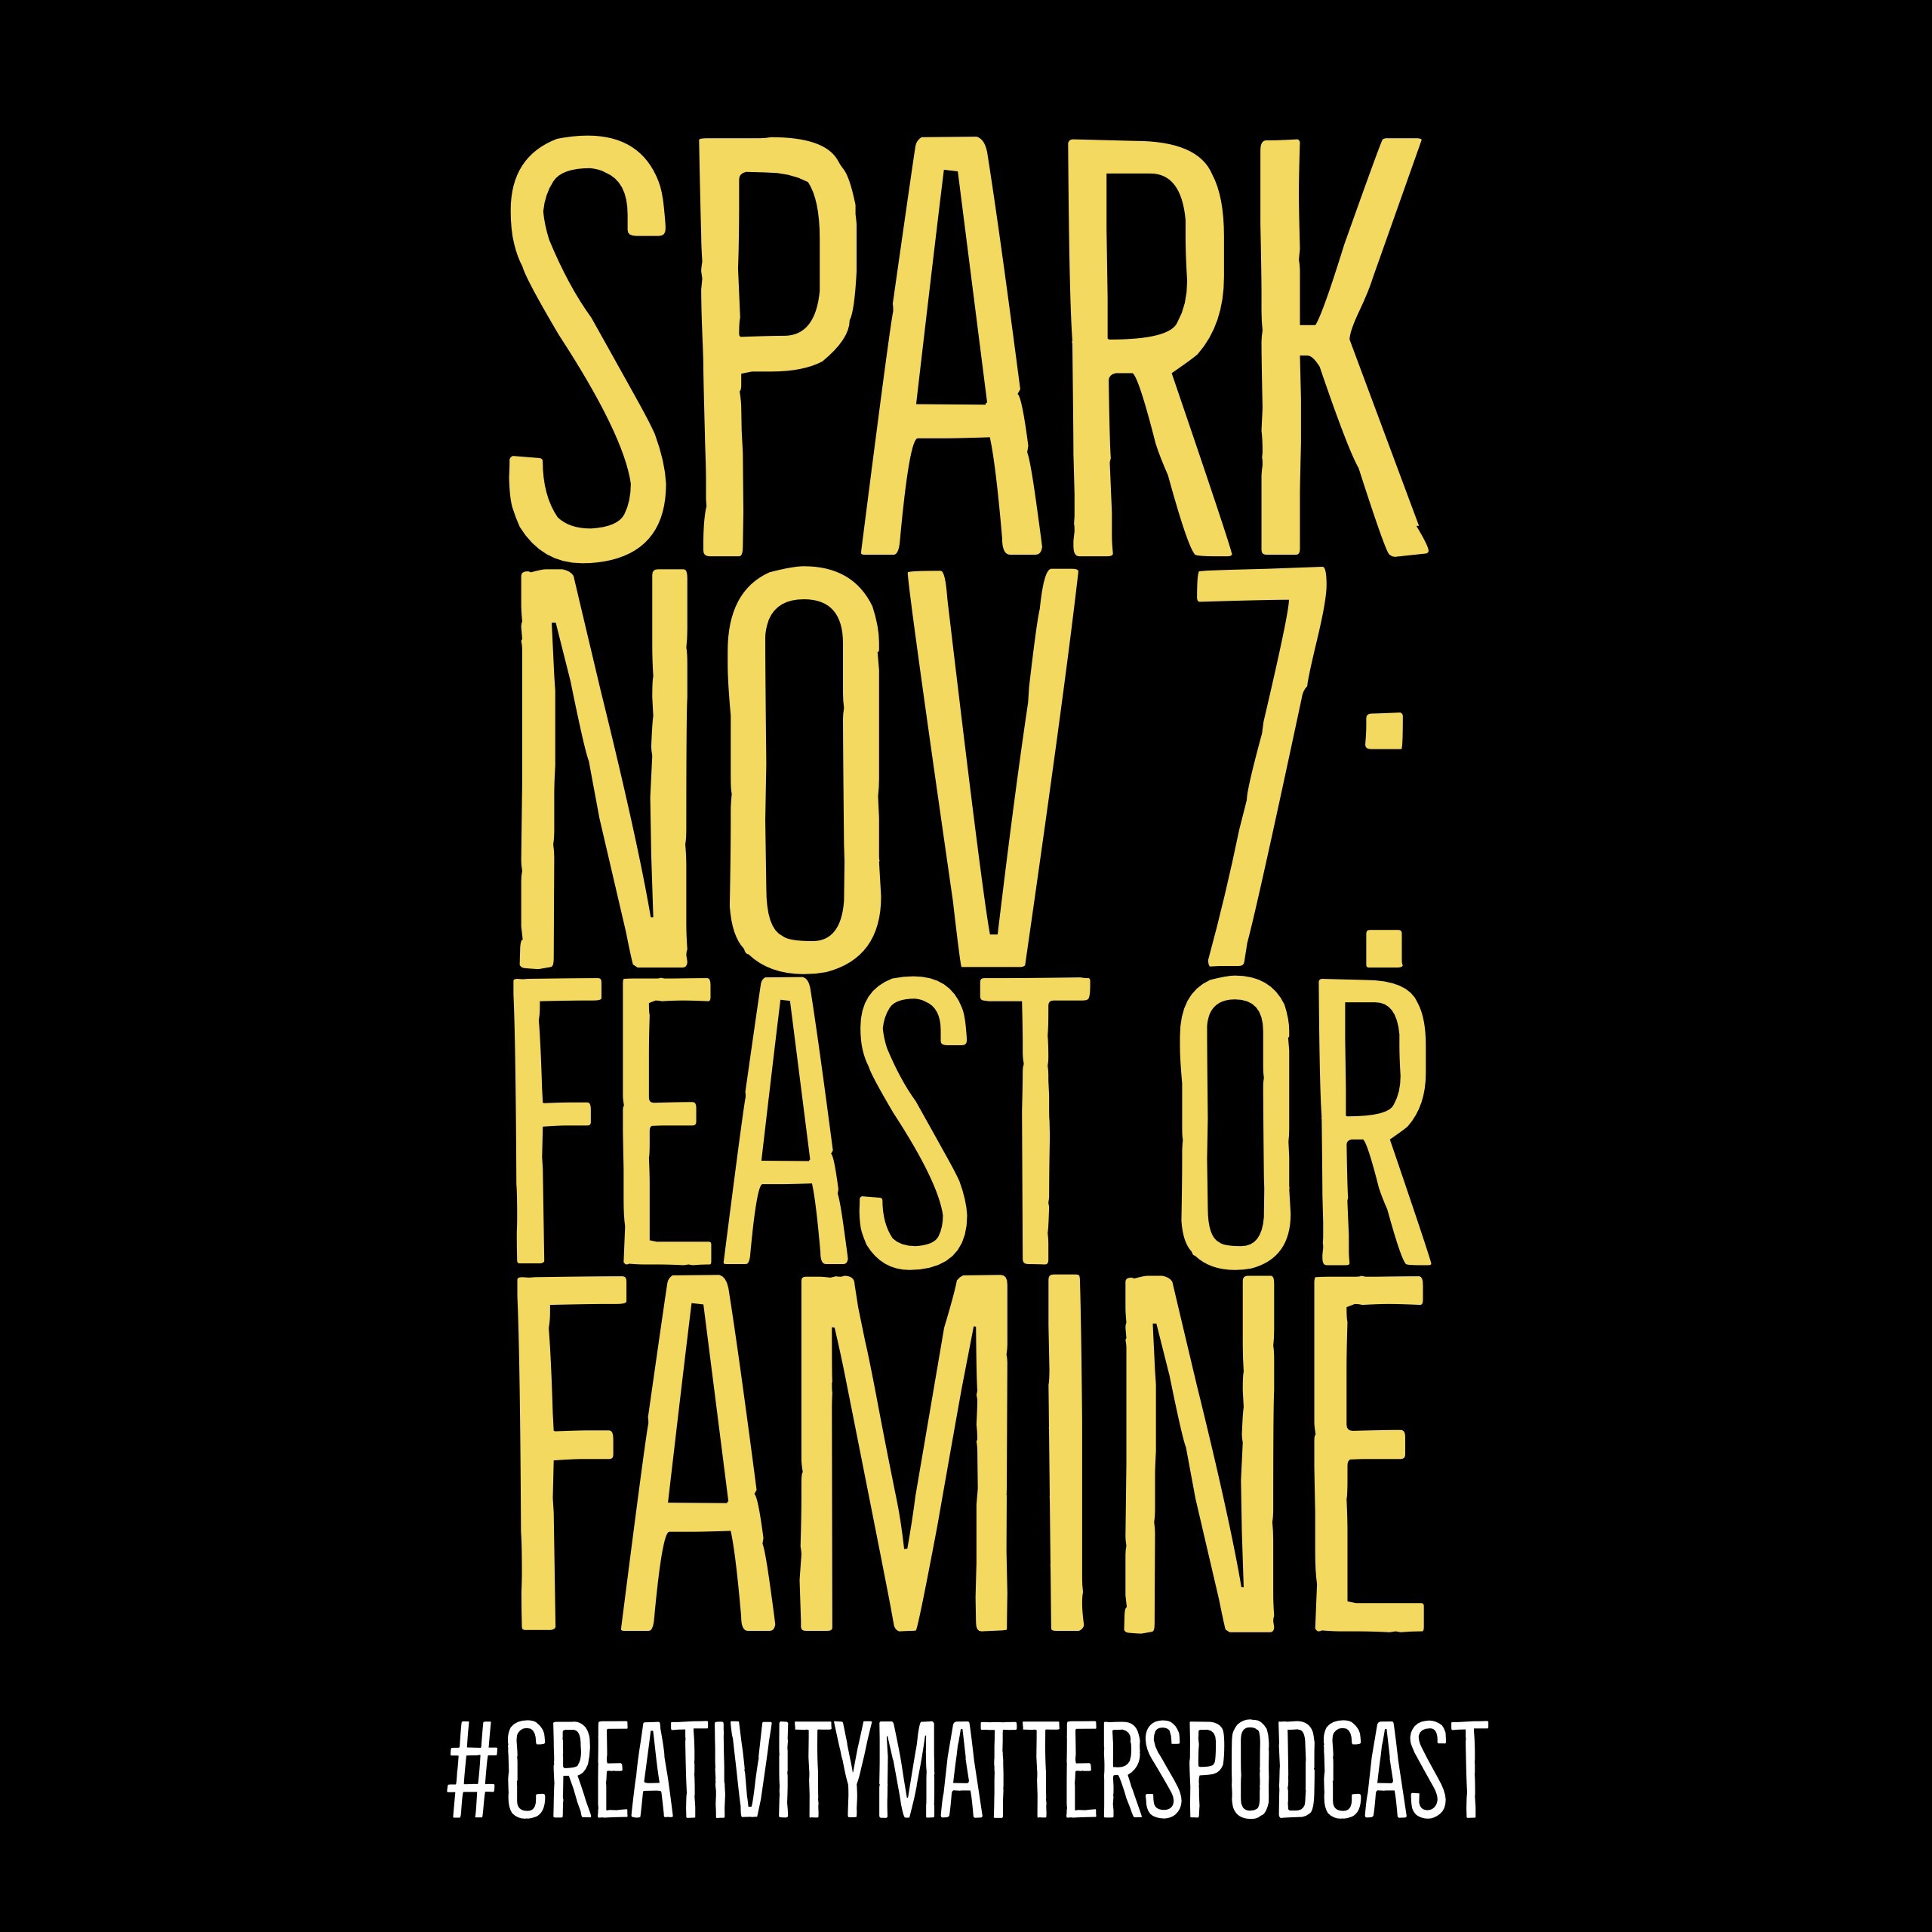 Spark 7: Feast or Famine